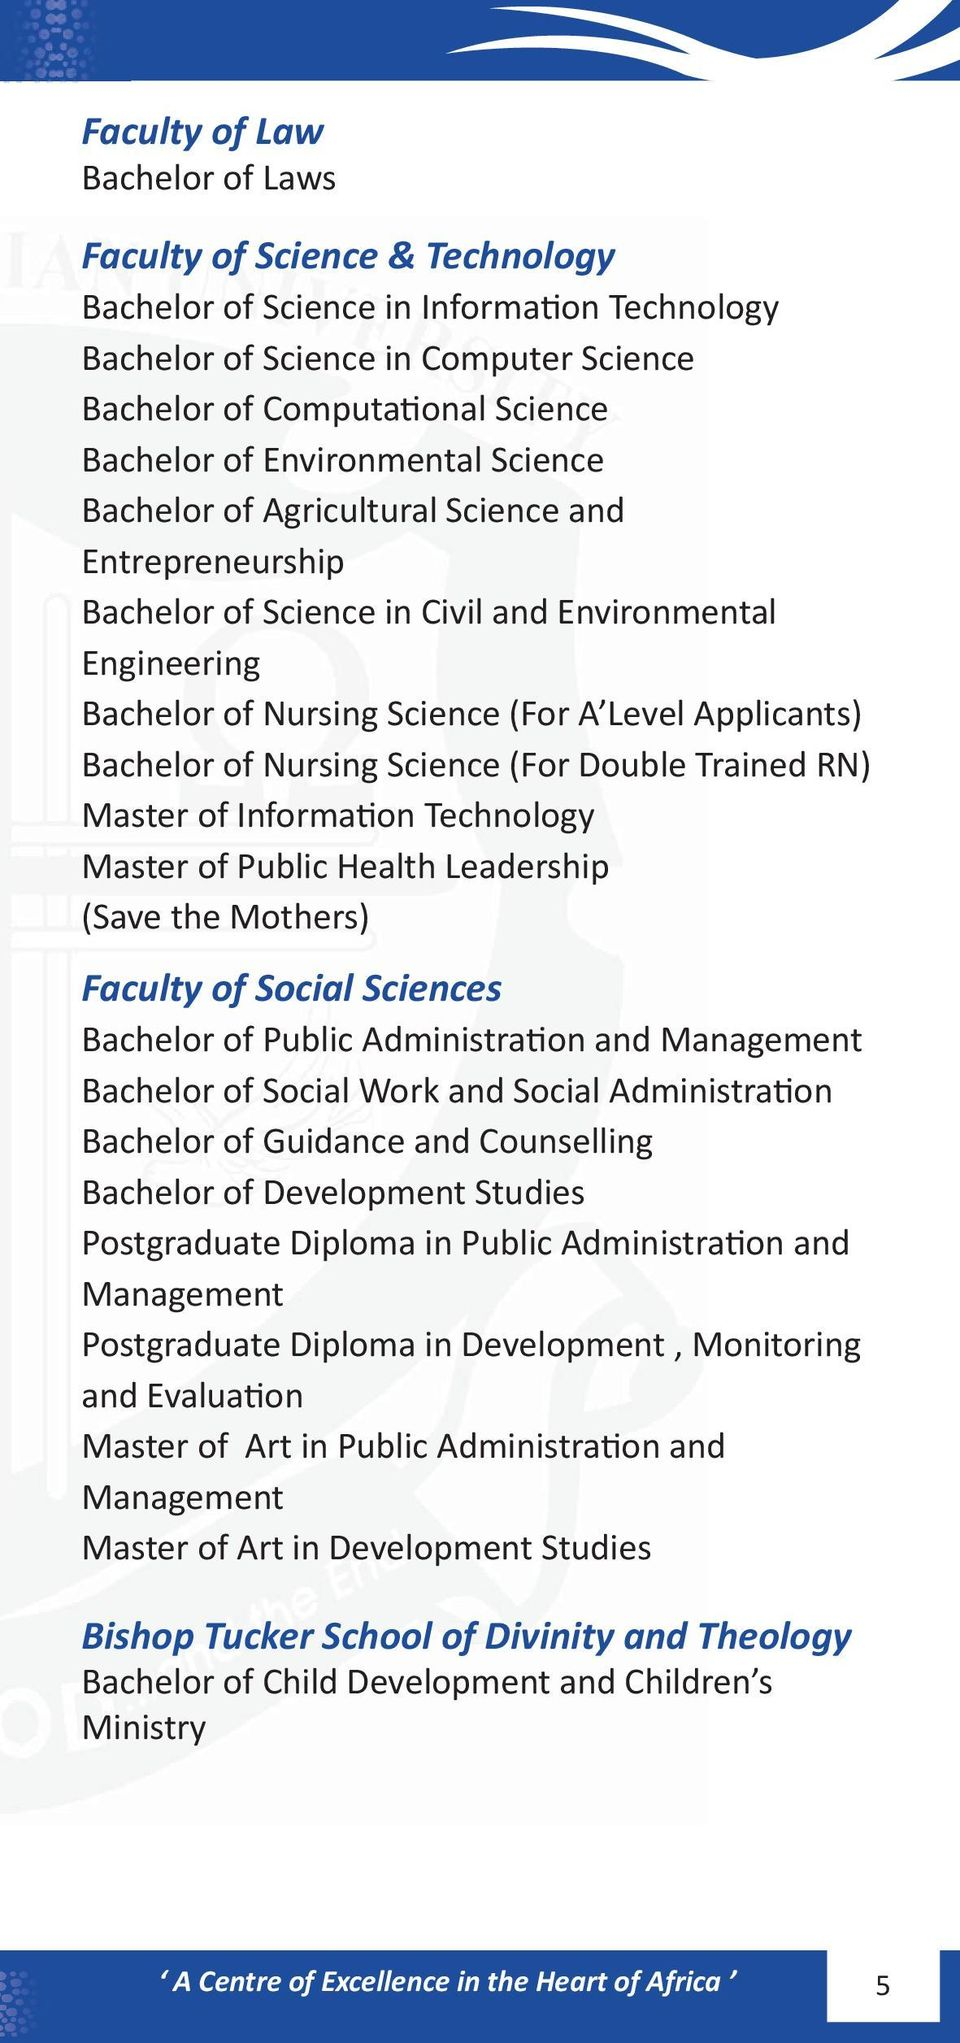 Nursing Science (For Double Trained RN) Master of Information Technology Master of Public Health Leadership (Save the Mothers) Faculty of Social Sciences Bachelor of Public Administration and